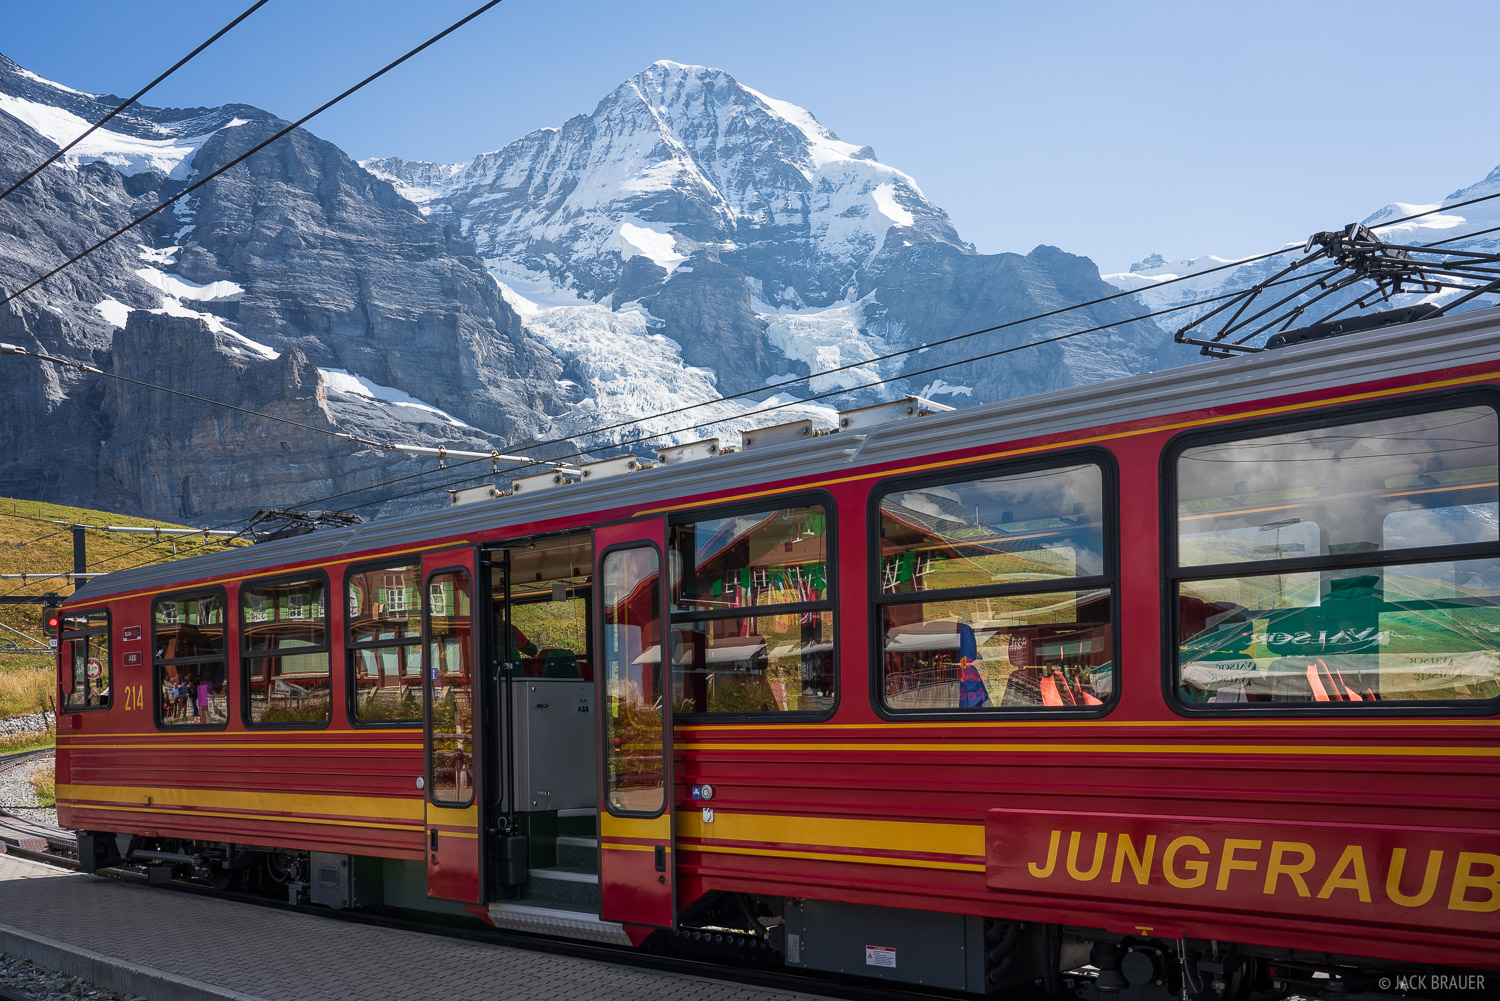 Bernese Alps, Jungfraubahn, Kleine Scheidegg, Mönch, Switzerland, train, Alps, photo